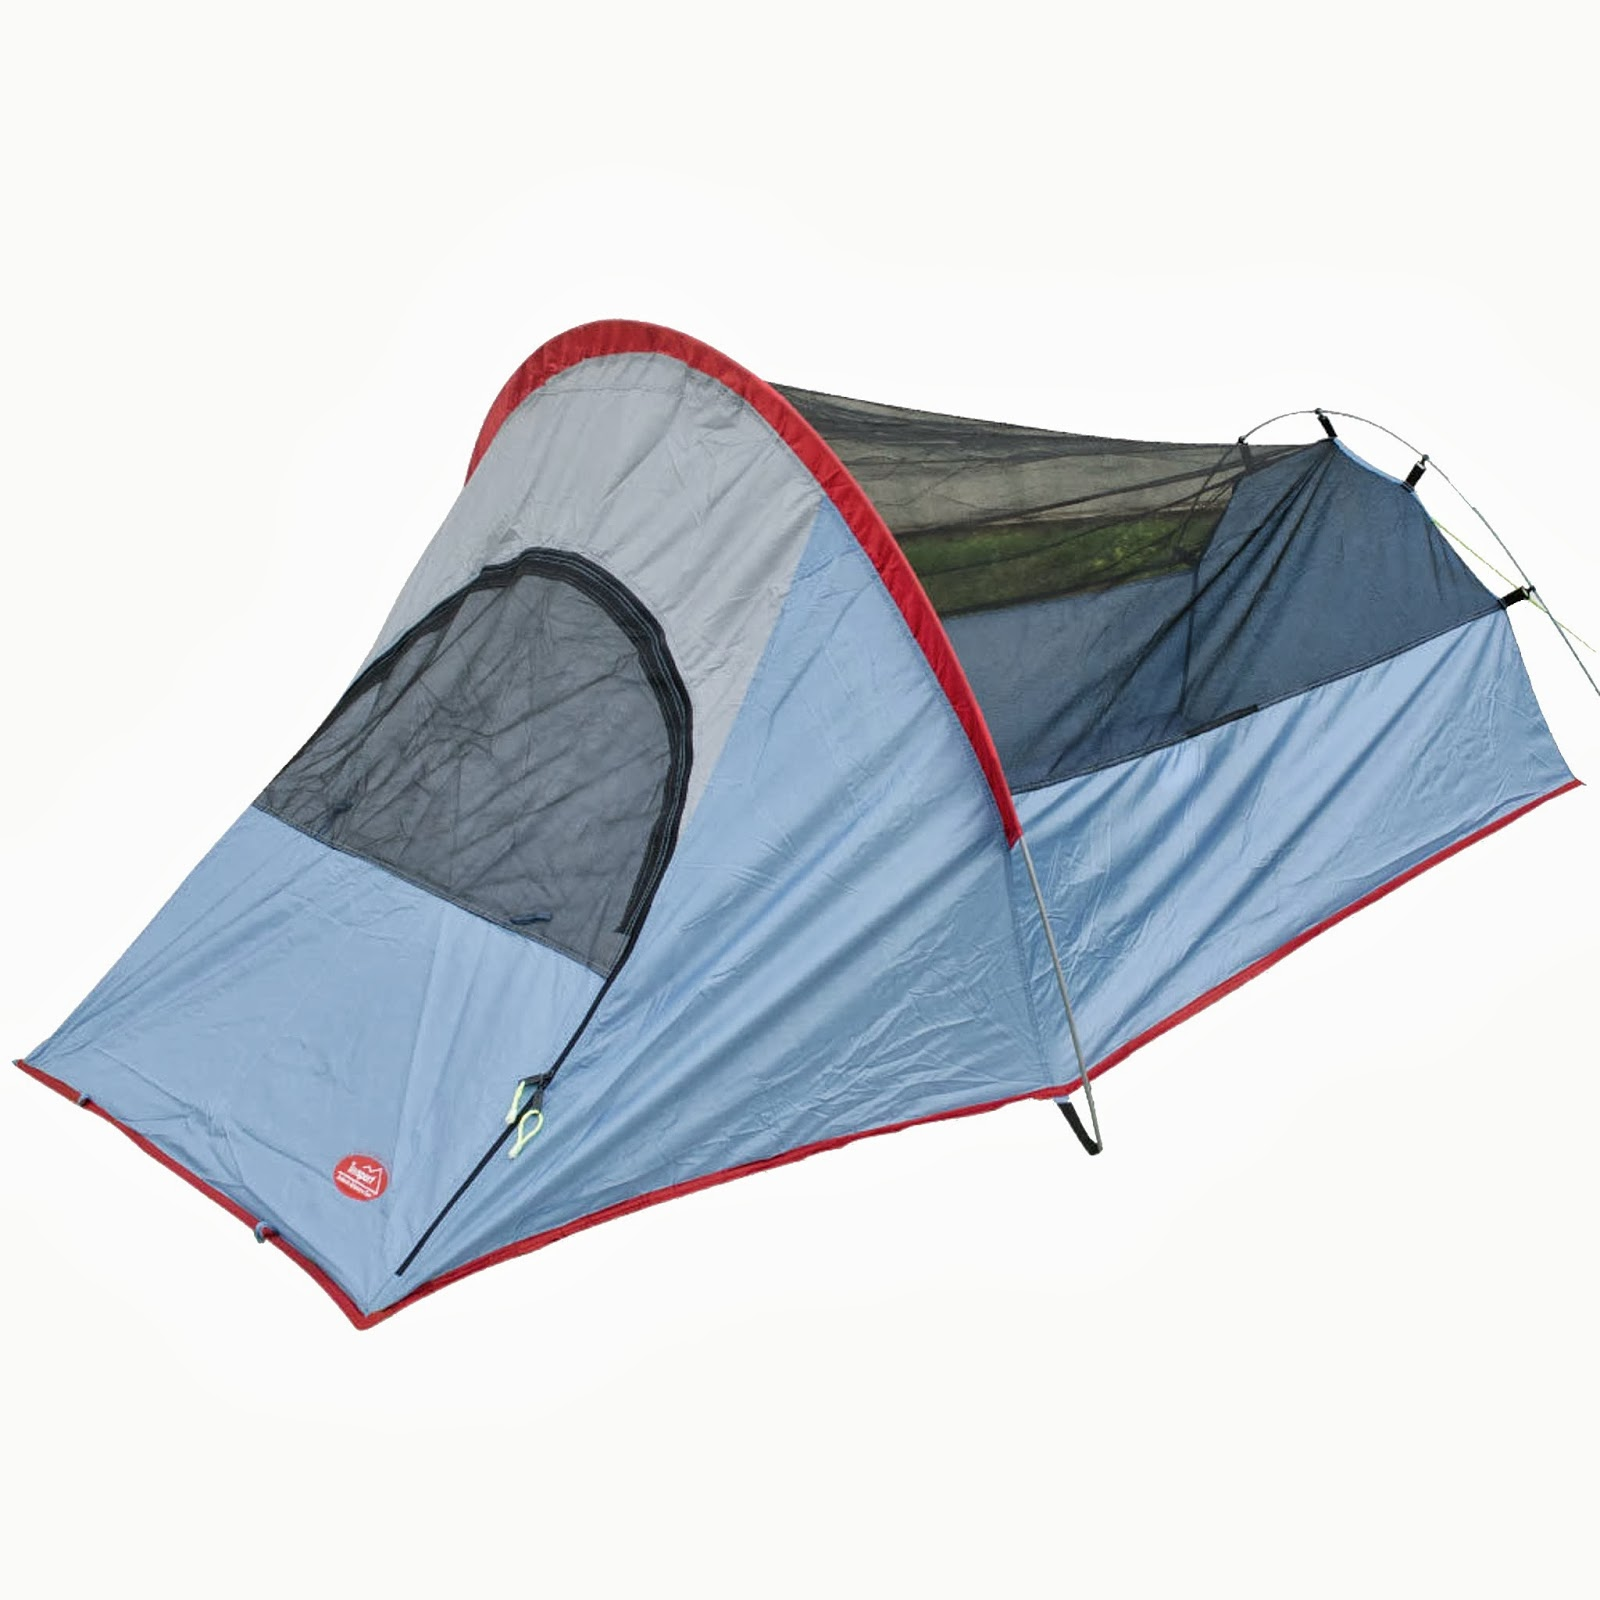 The Texsport Saguaro Bivy Shelter Tent is an ultralight freestanding tent designed for hiking into the backcountry & Texsport Saguaro Bivy Shelter Tent